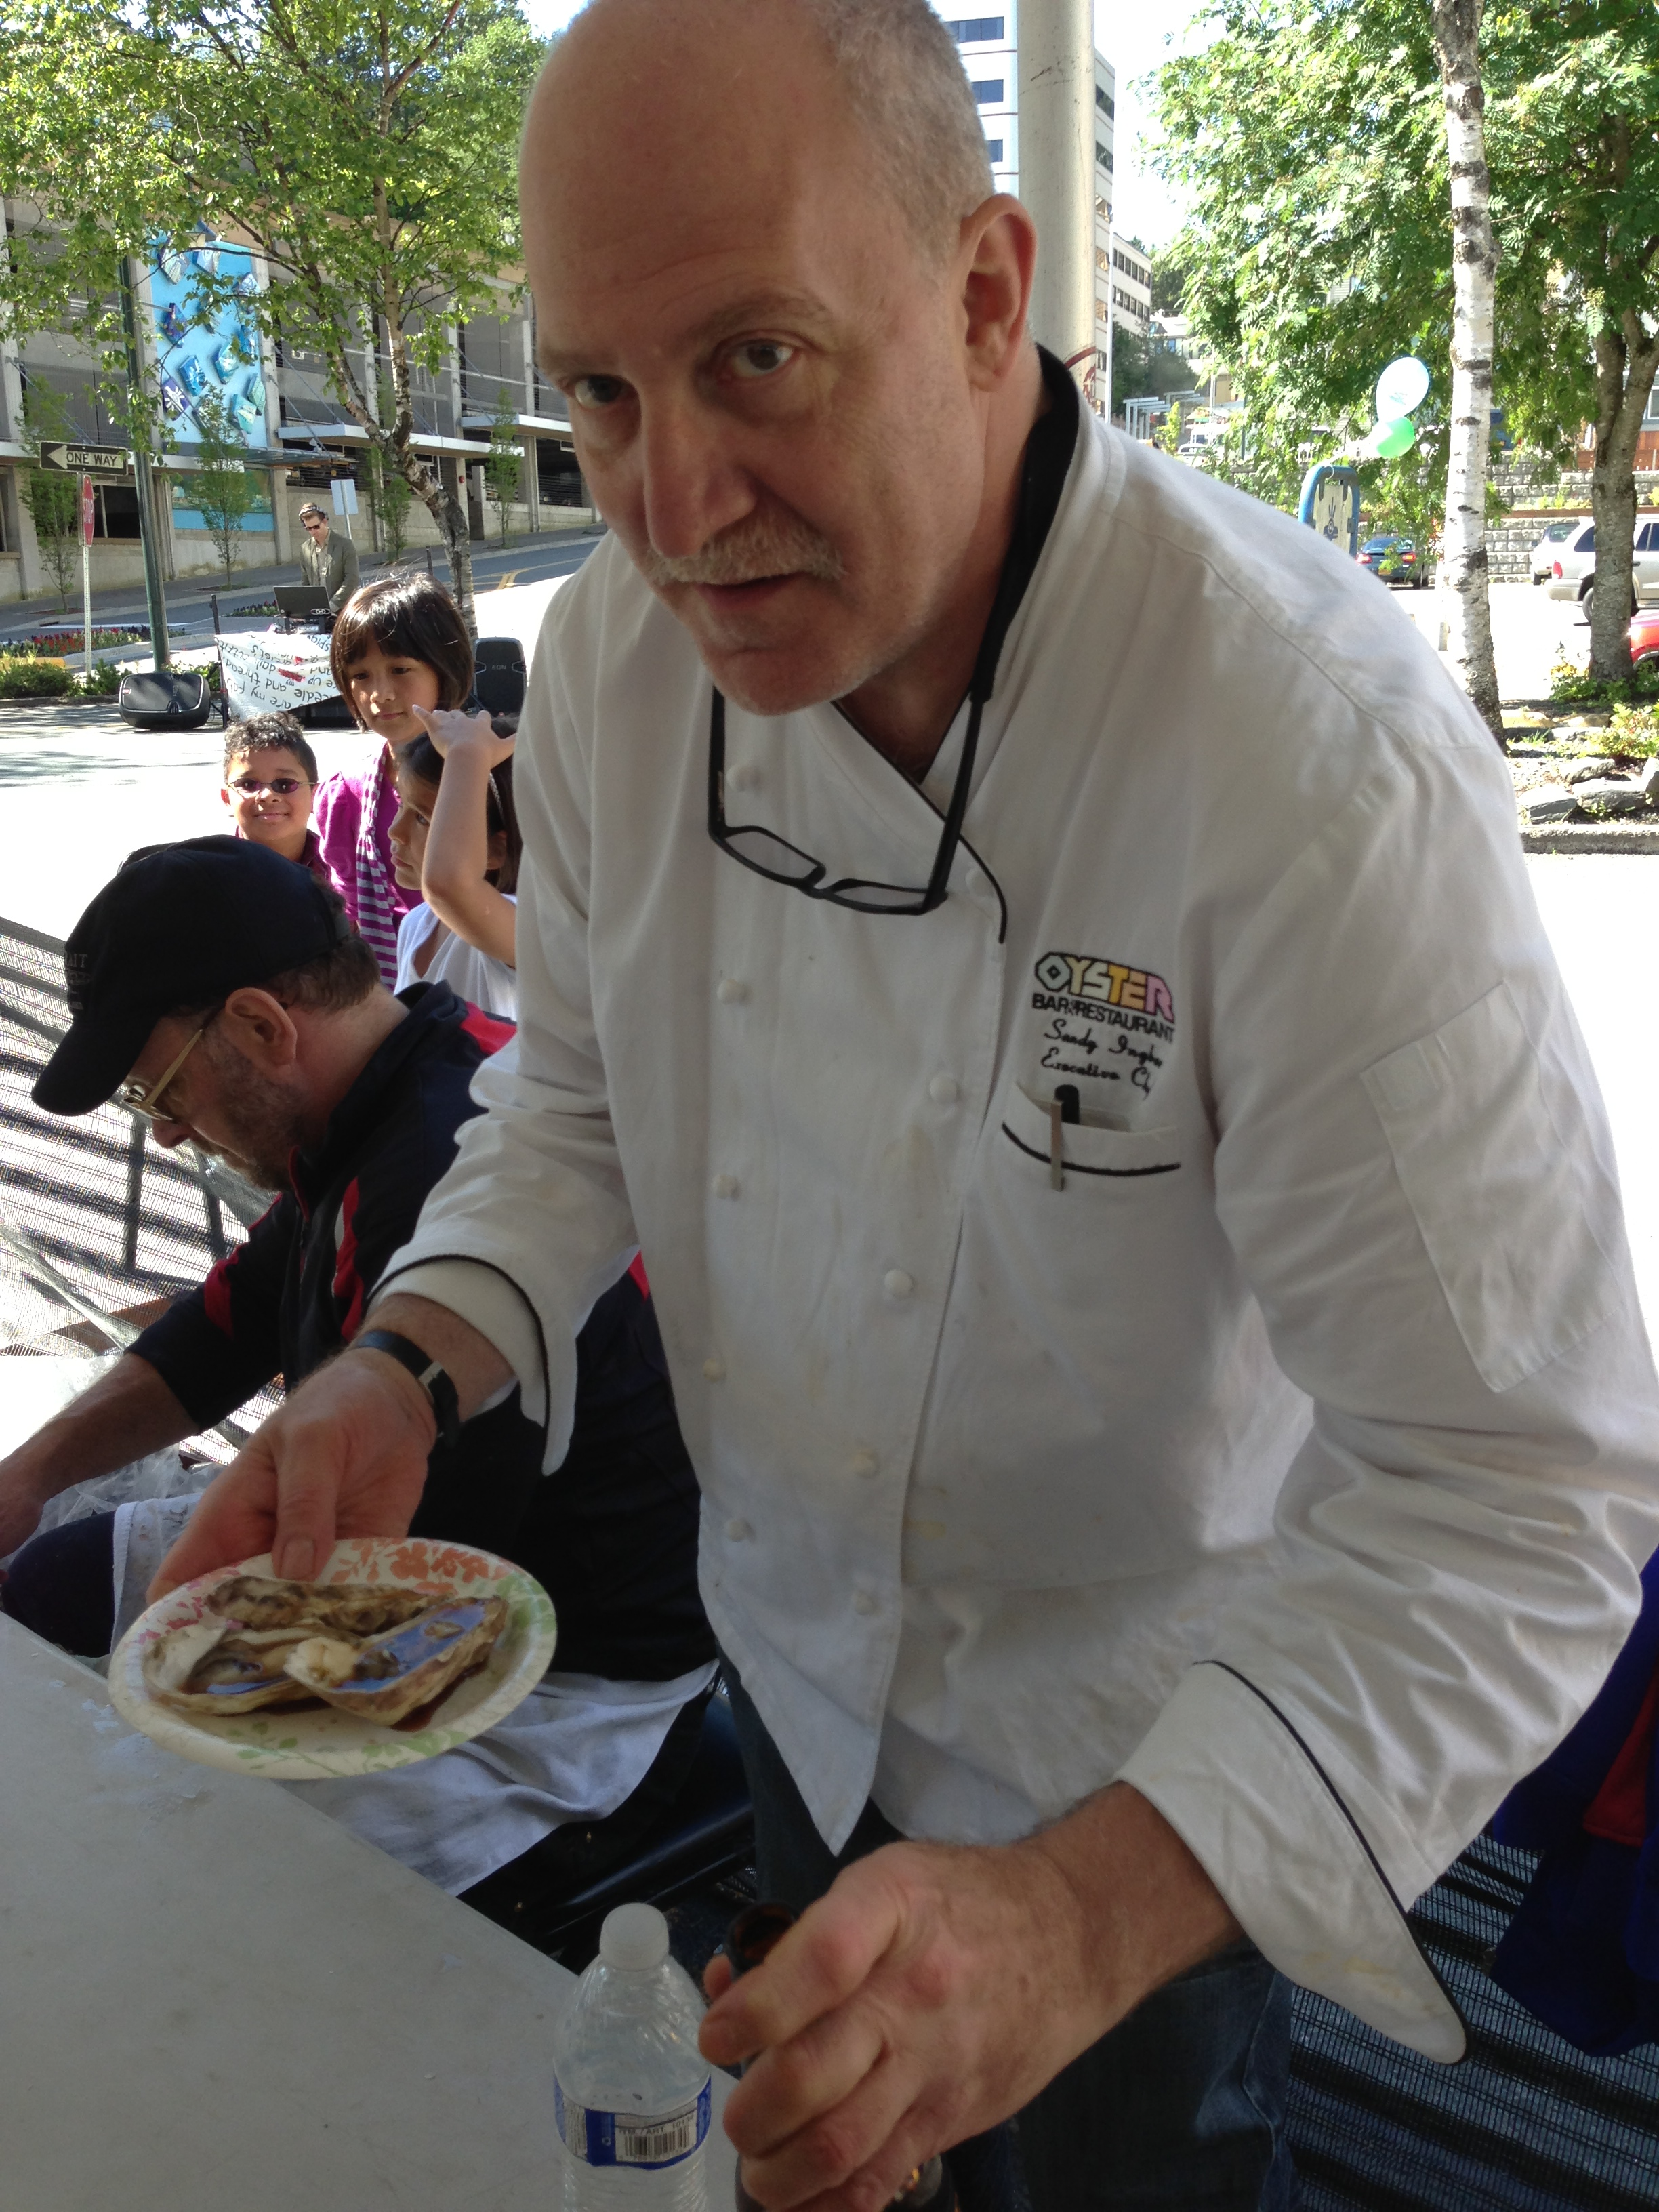 Chef Ingber preparing oyster shooters.